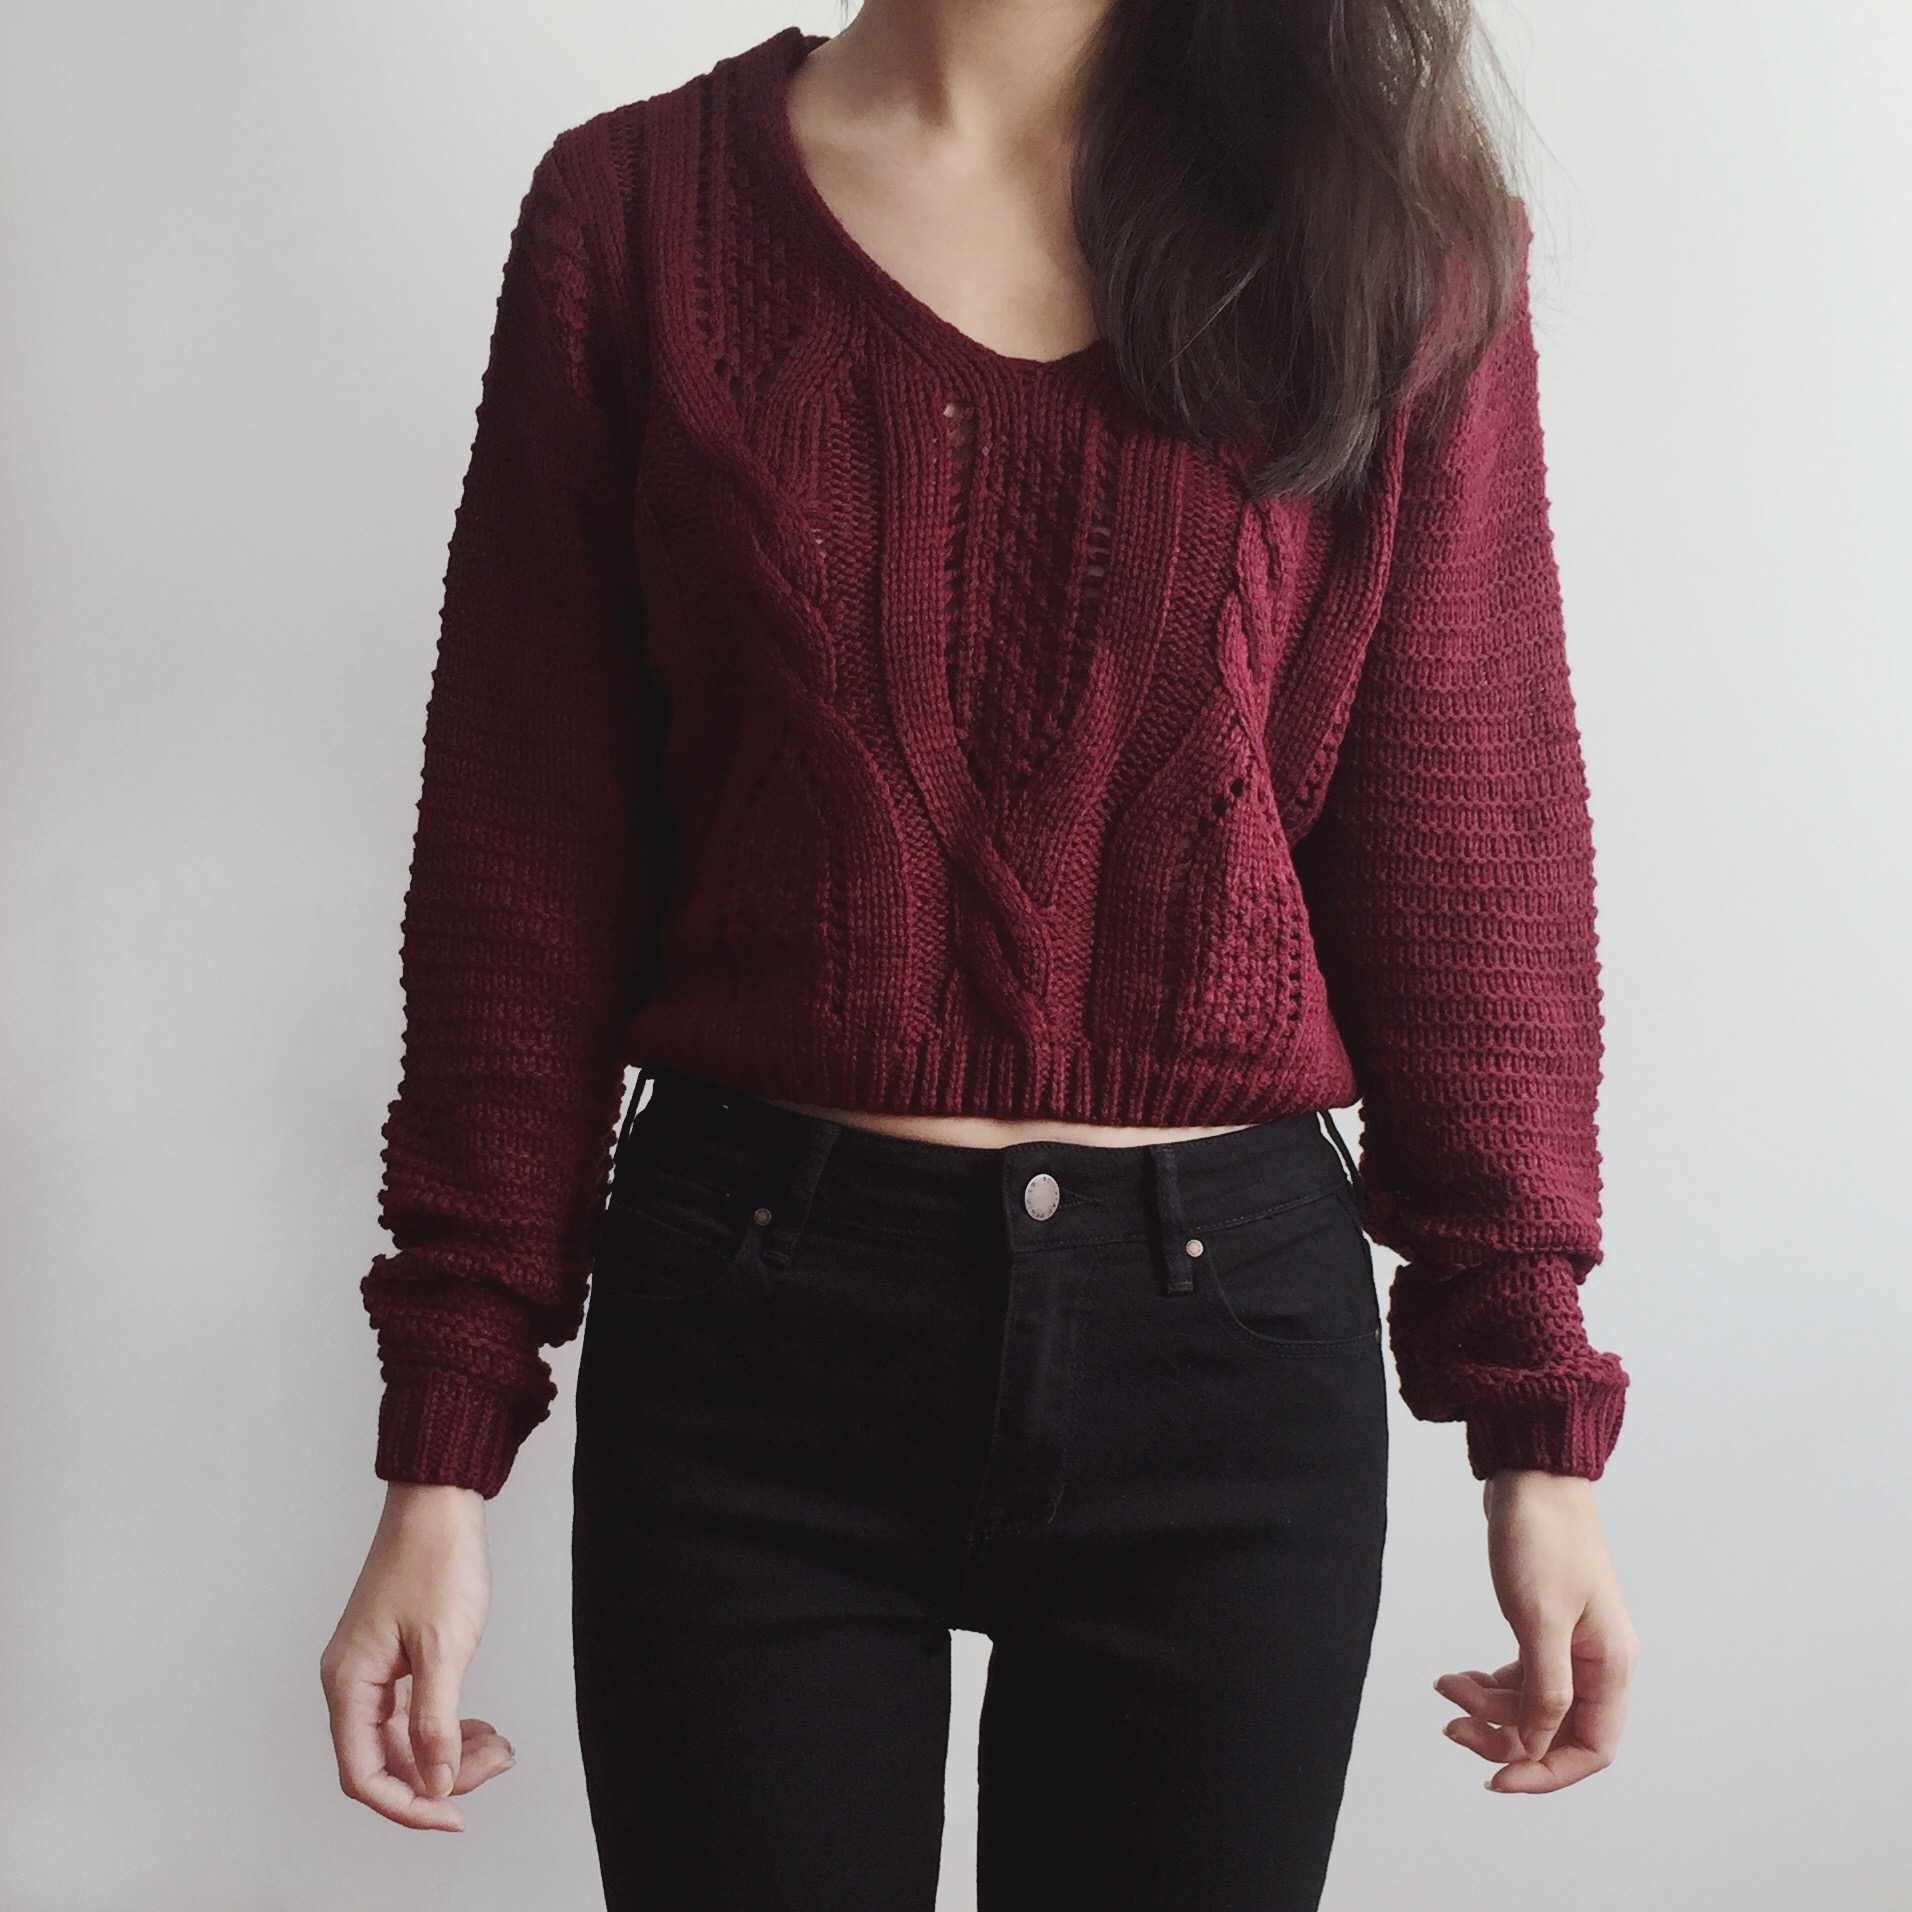 Lace Up Back Cropped Knit Sweater (Maroon) · Megoosta Fashion ...